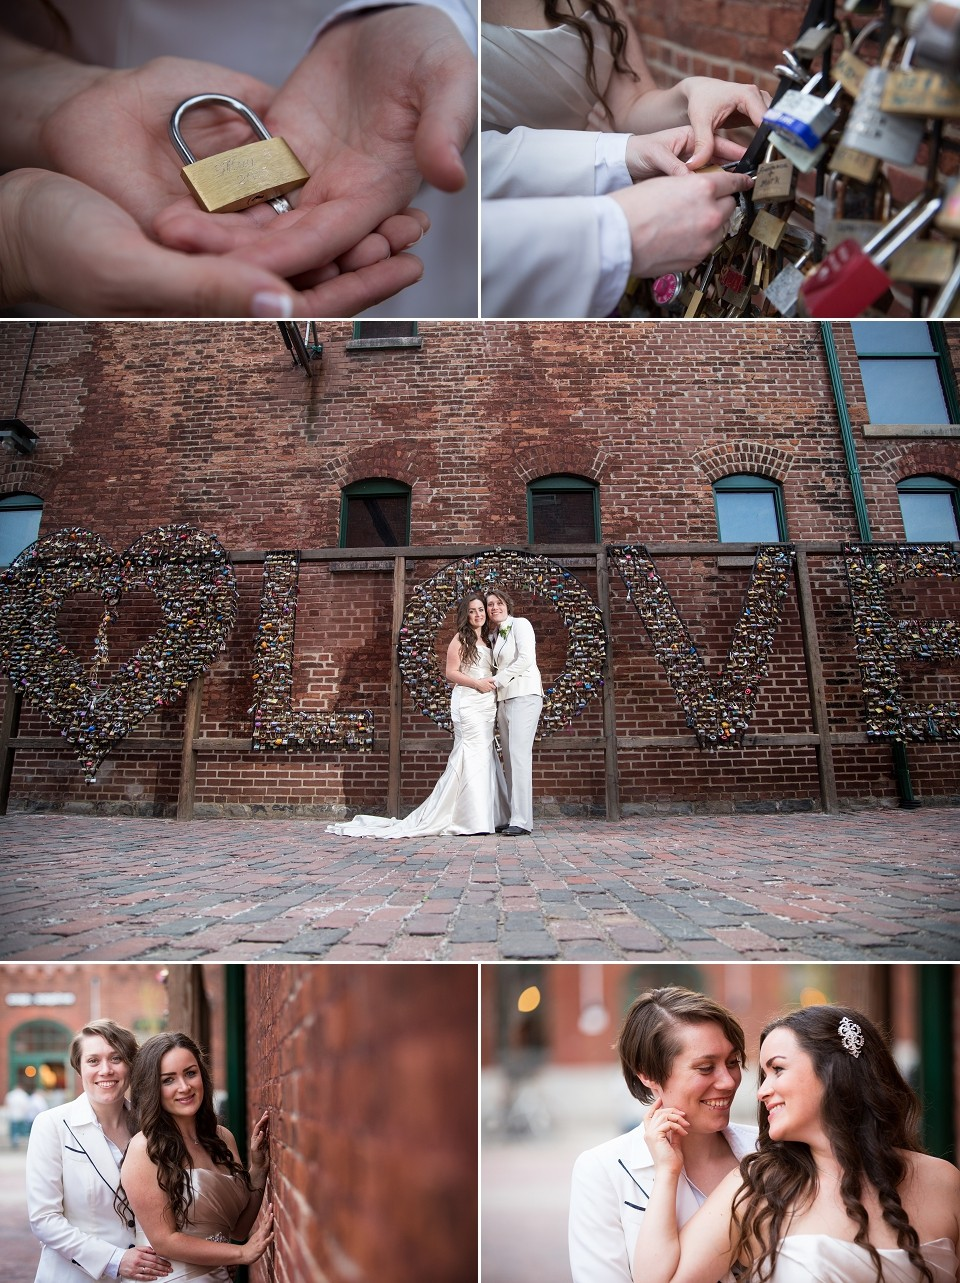 attaching their lock at the distillery district wedding